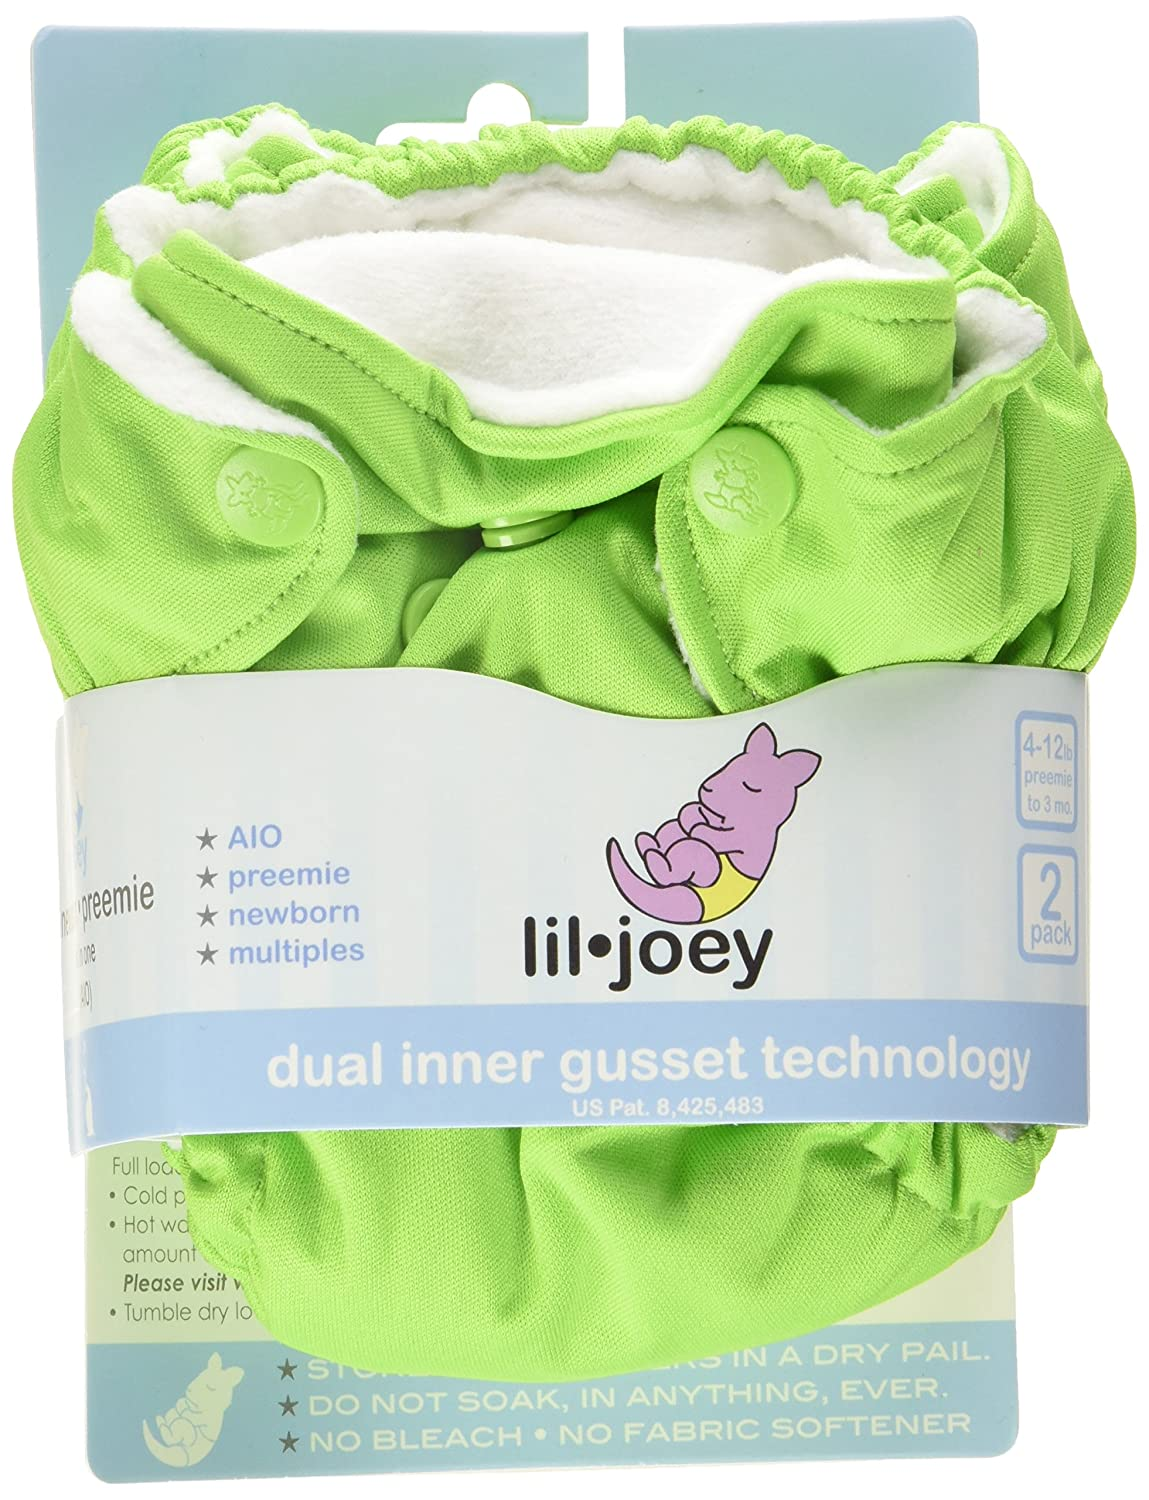 Aquarius Lil Joey All in One Cloth Diaper